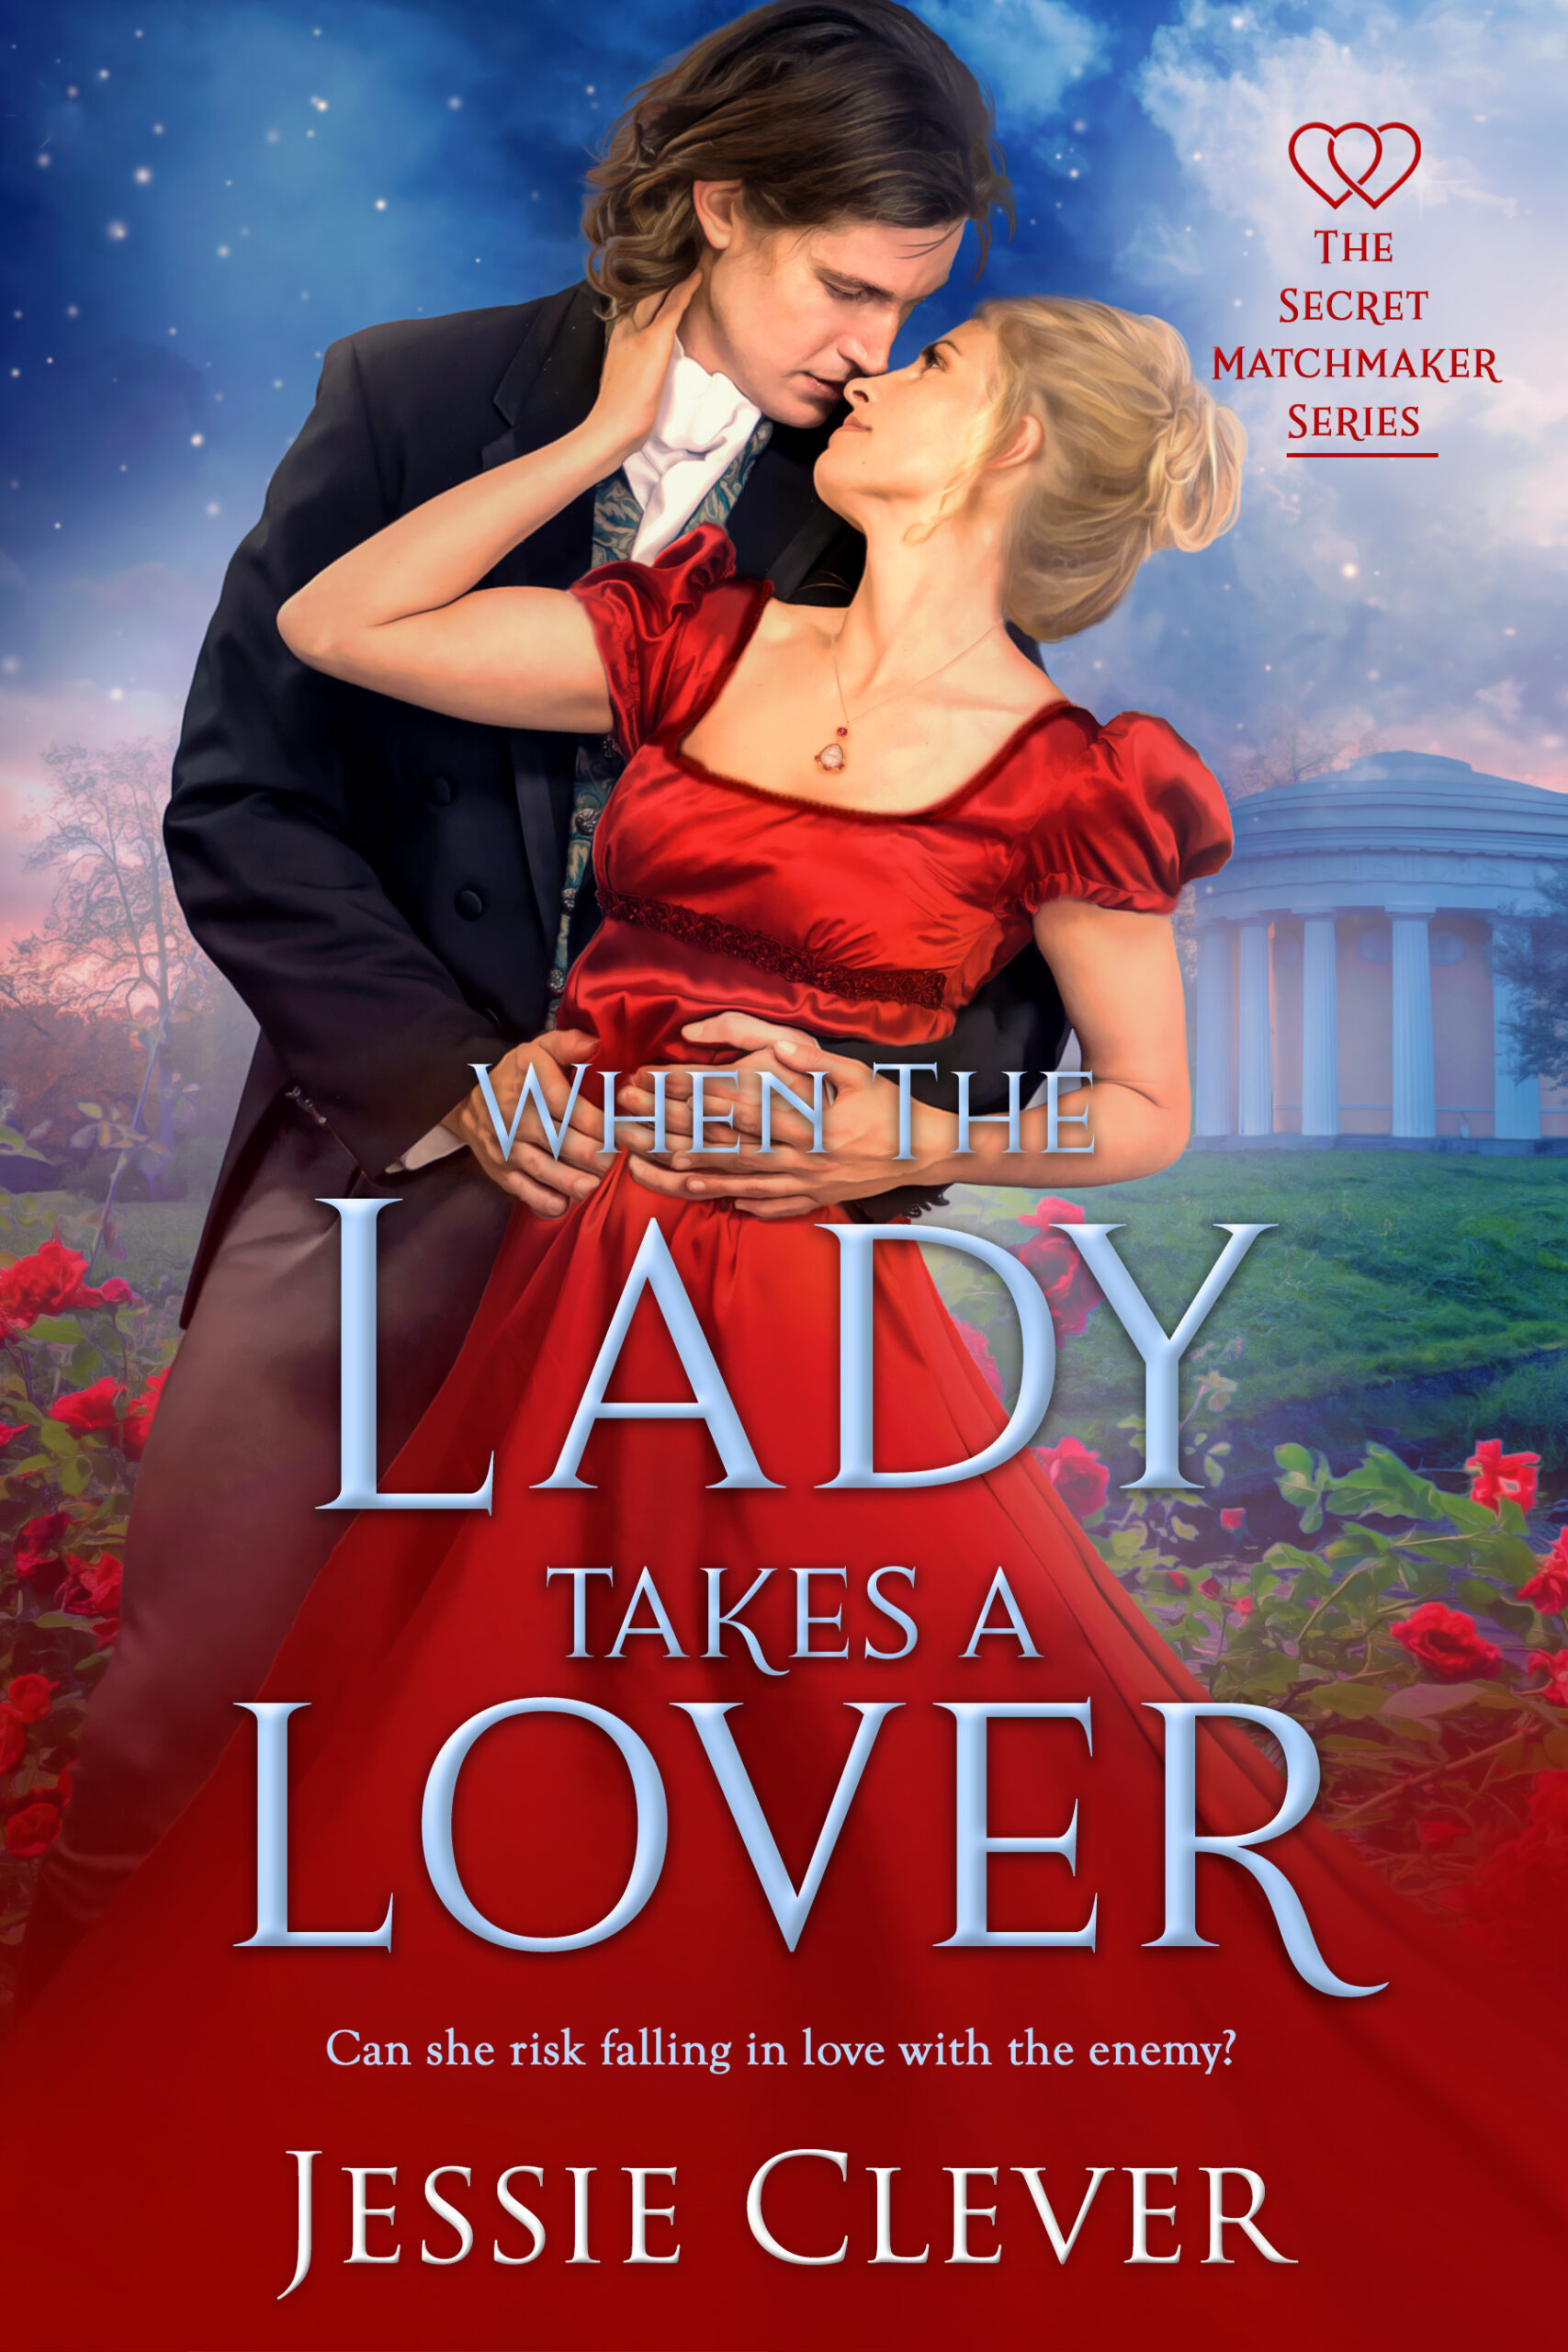 Now Available for Pre-Order: When the Lady Takes a Lover